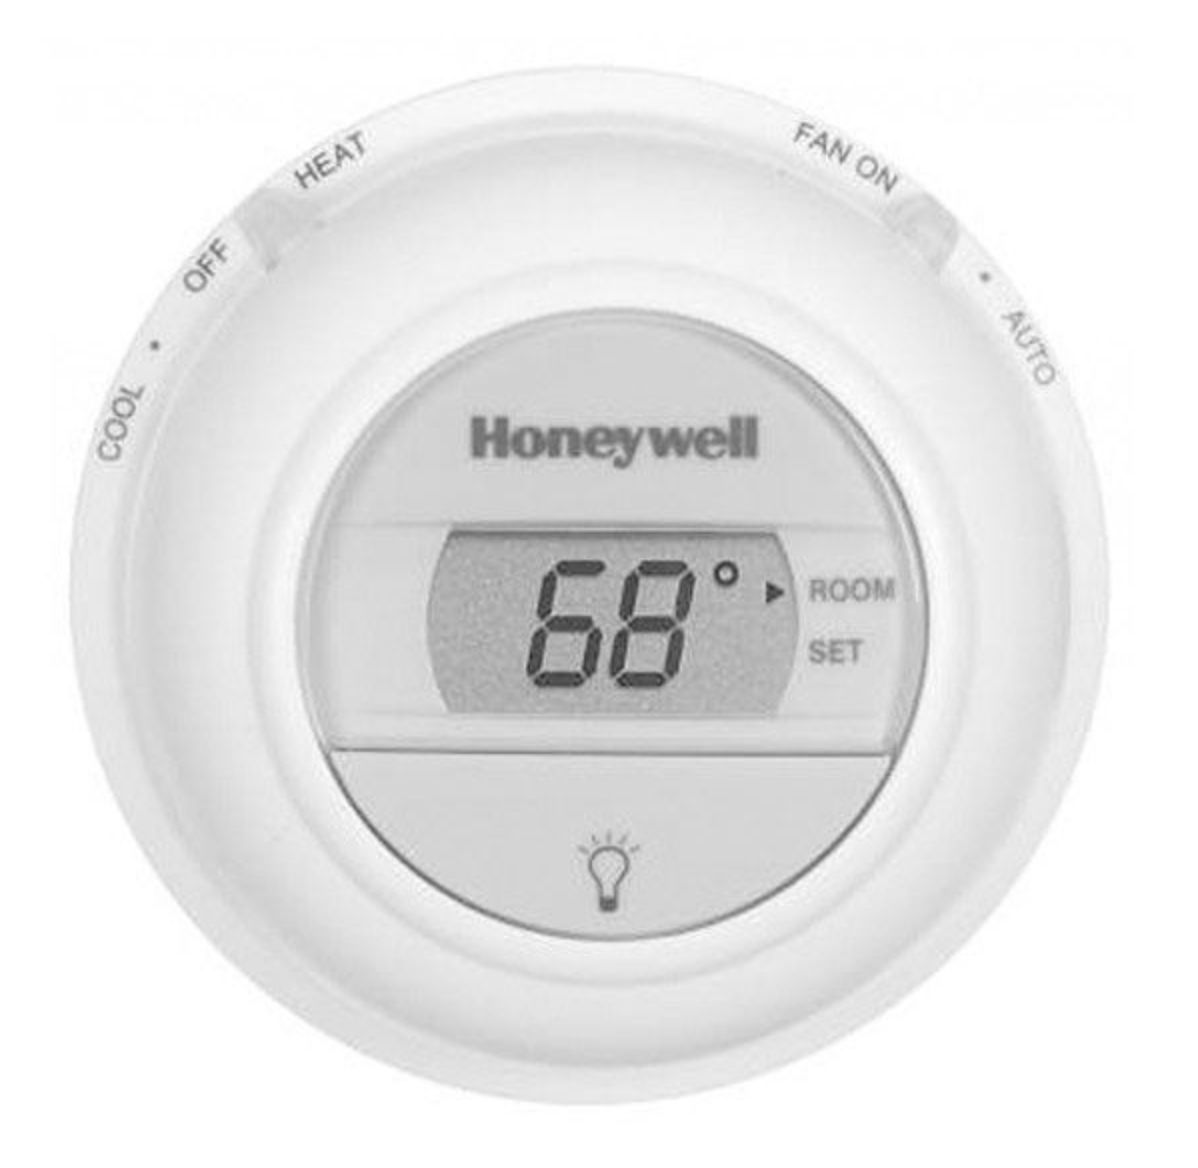 hight resolution of honeywell t8775c1005 thermostat replaces the traditional honeywell t87 at inspectapedia com